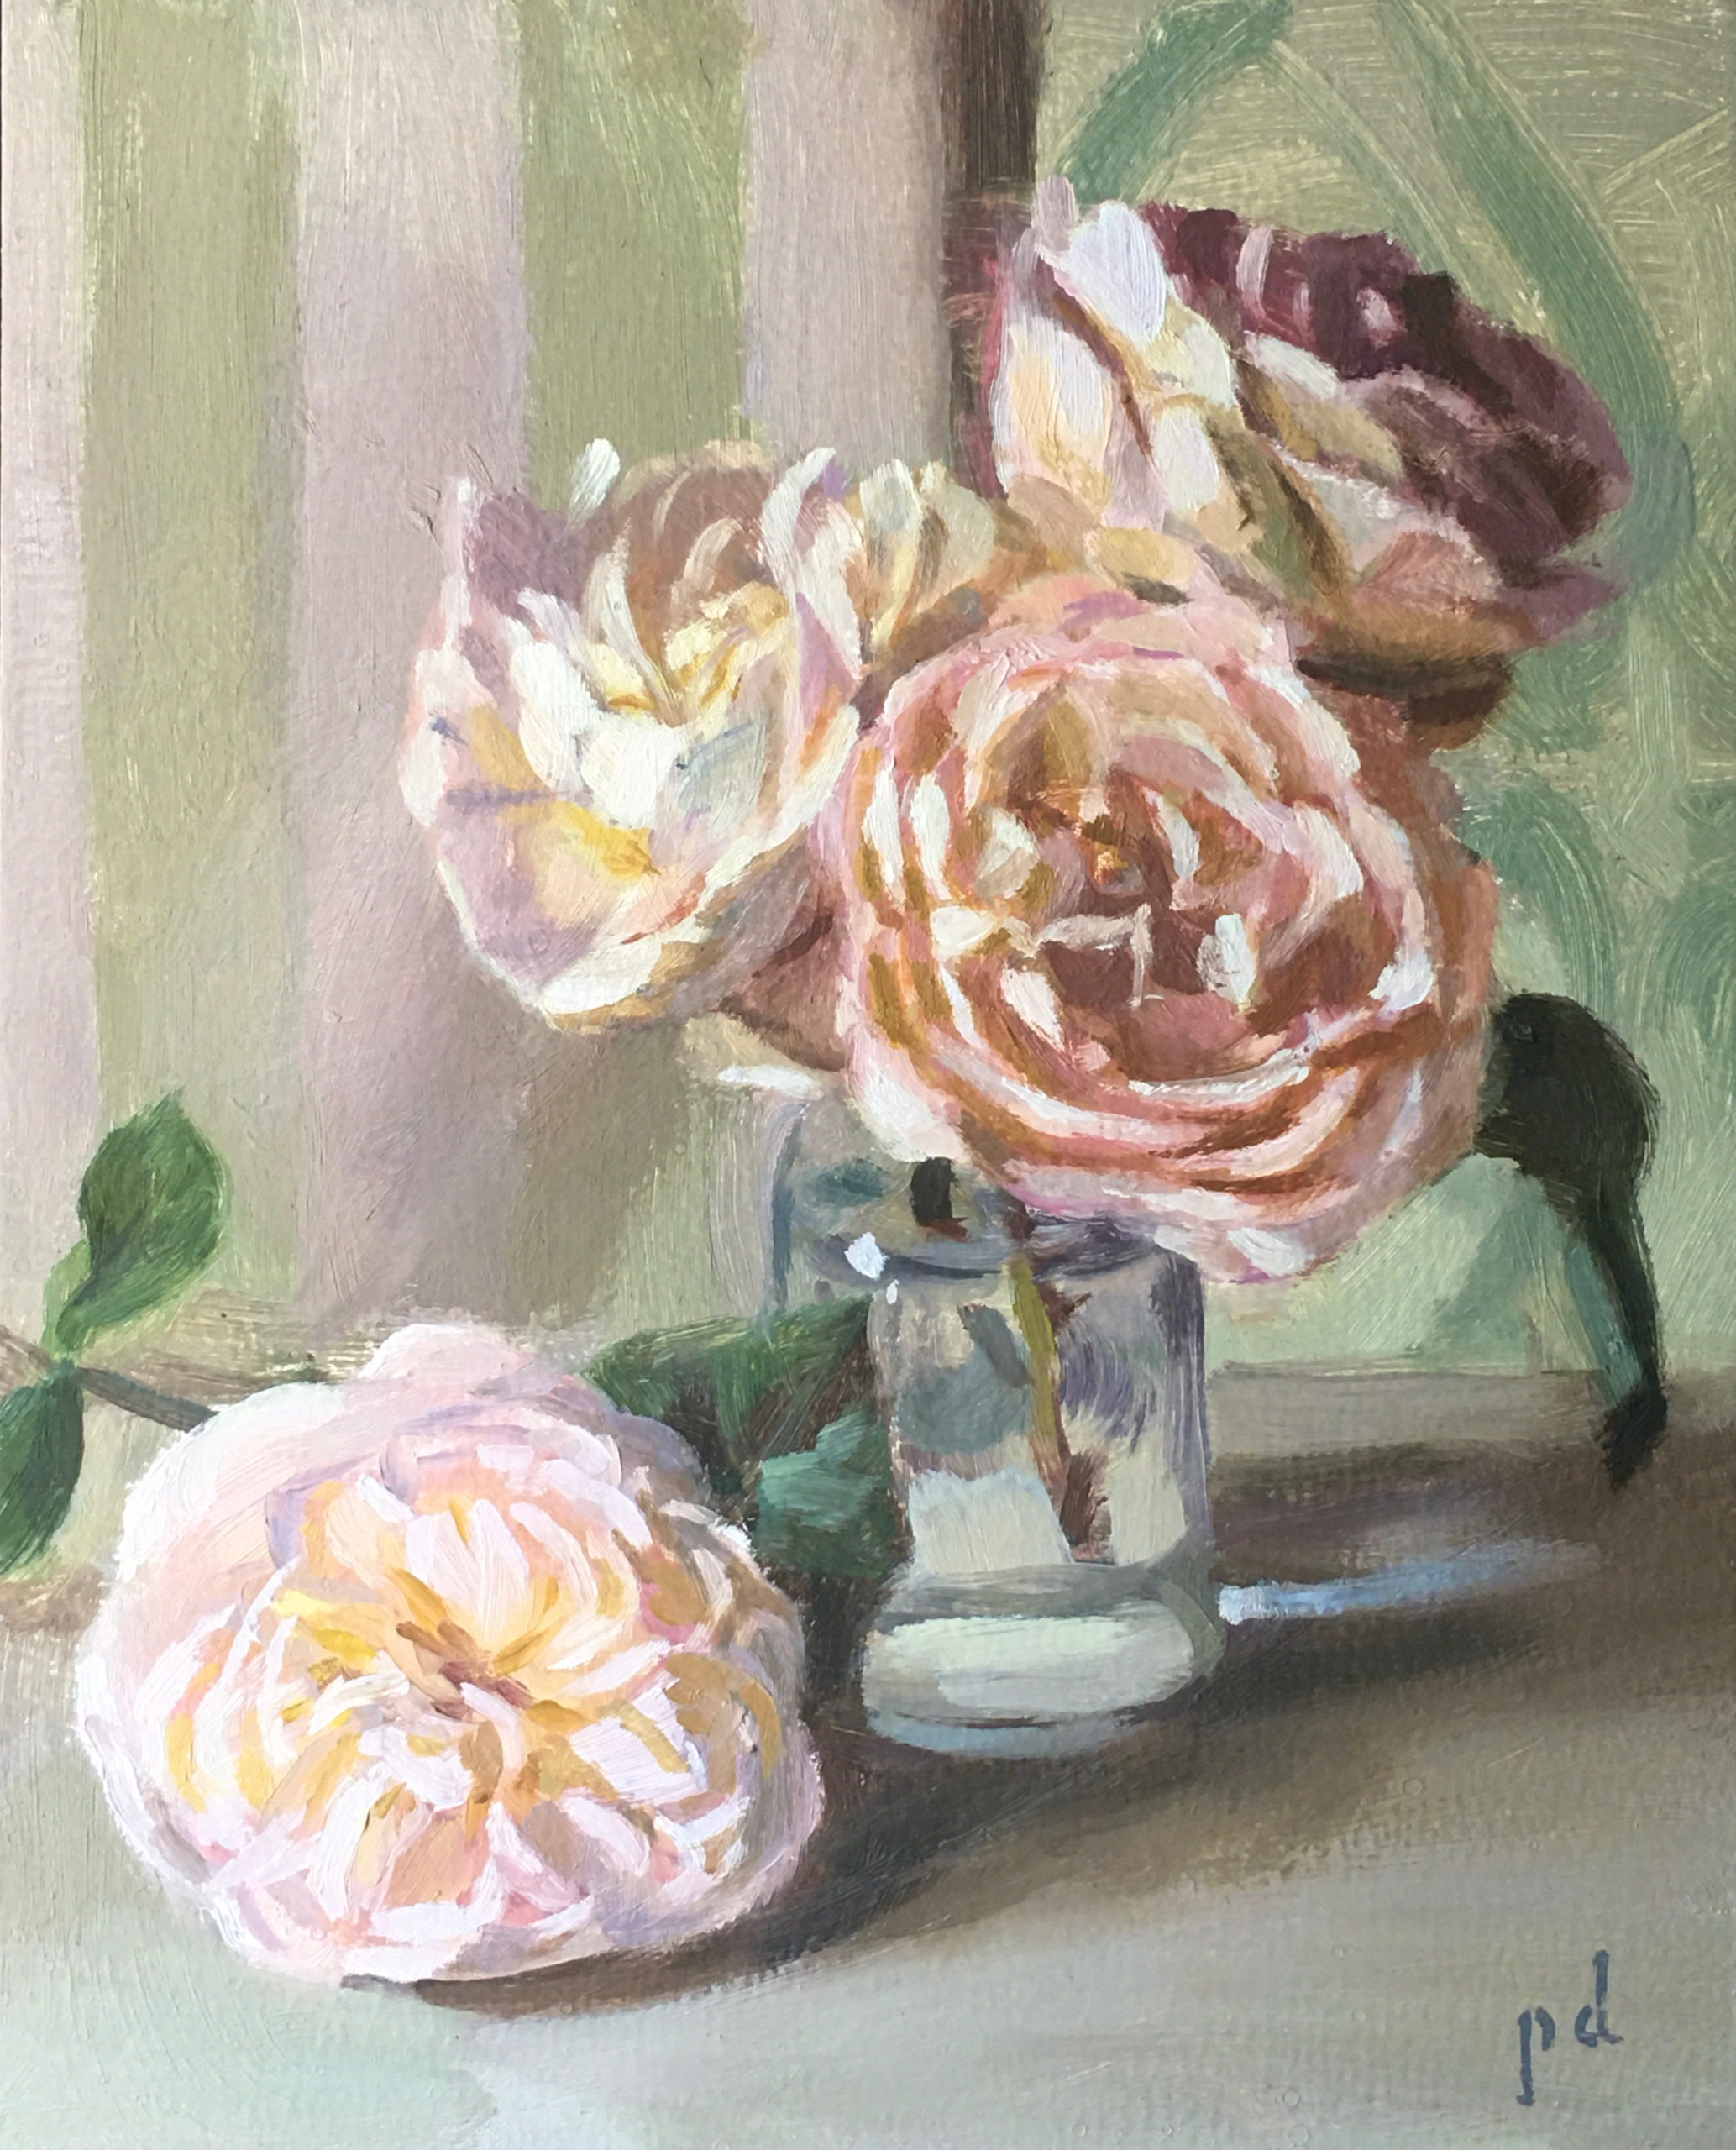 The Languorous Life Of Roses